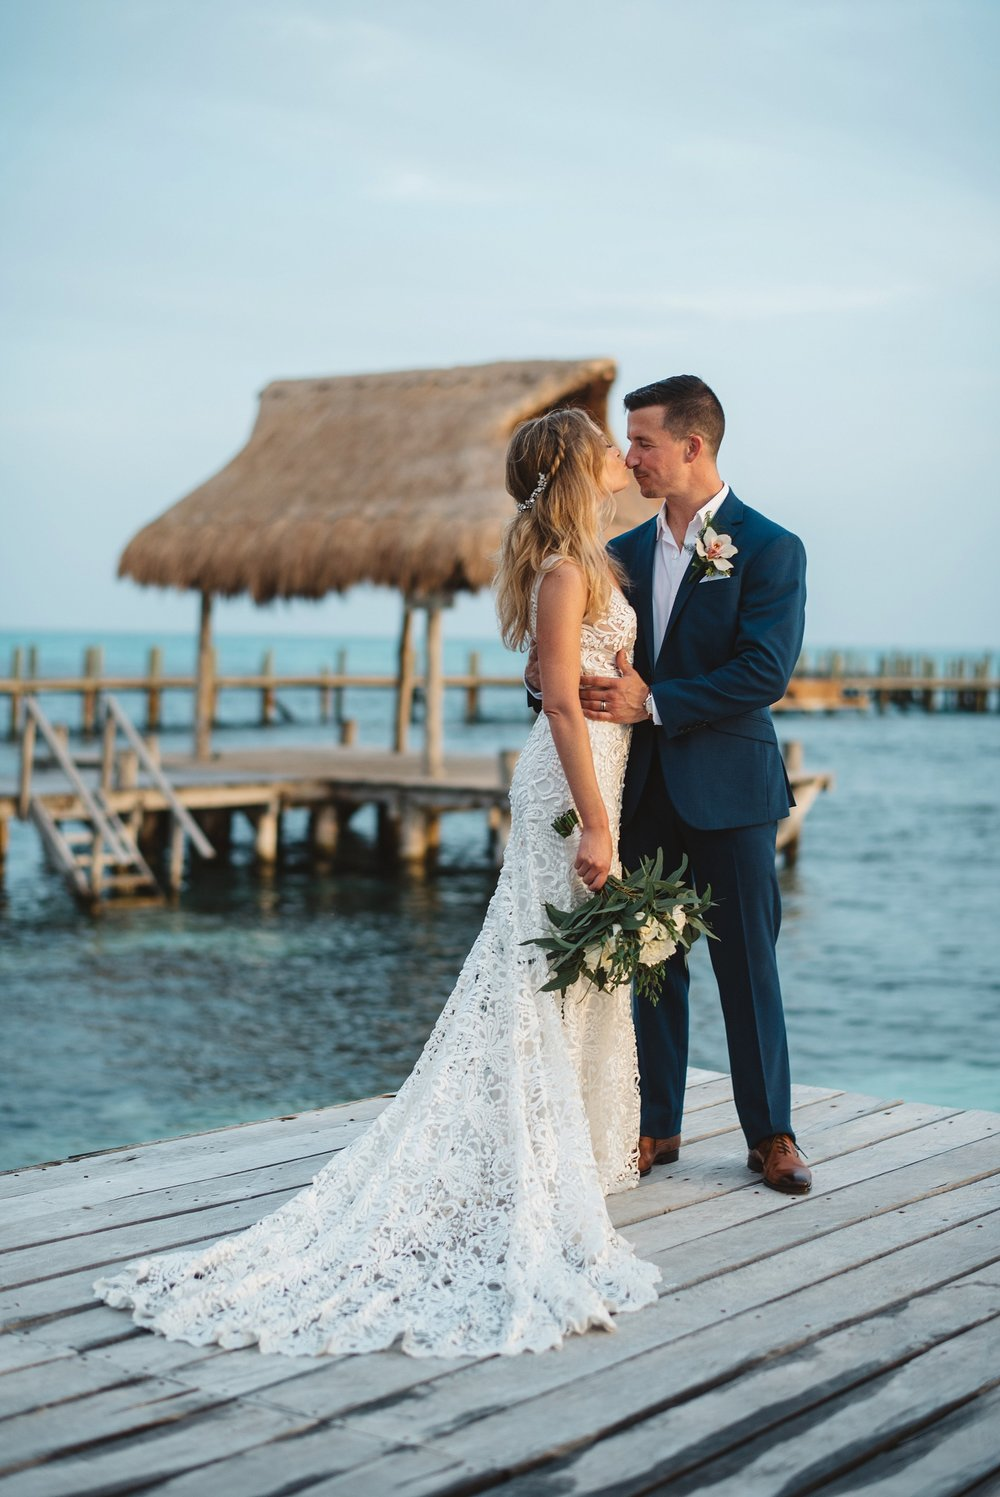 Isla Mujeres Destination Wedding_0108.jpg